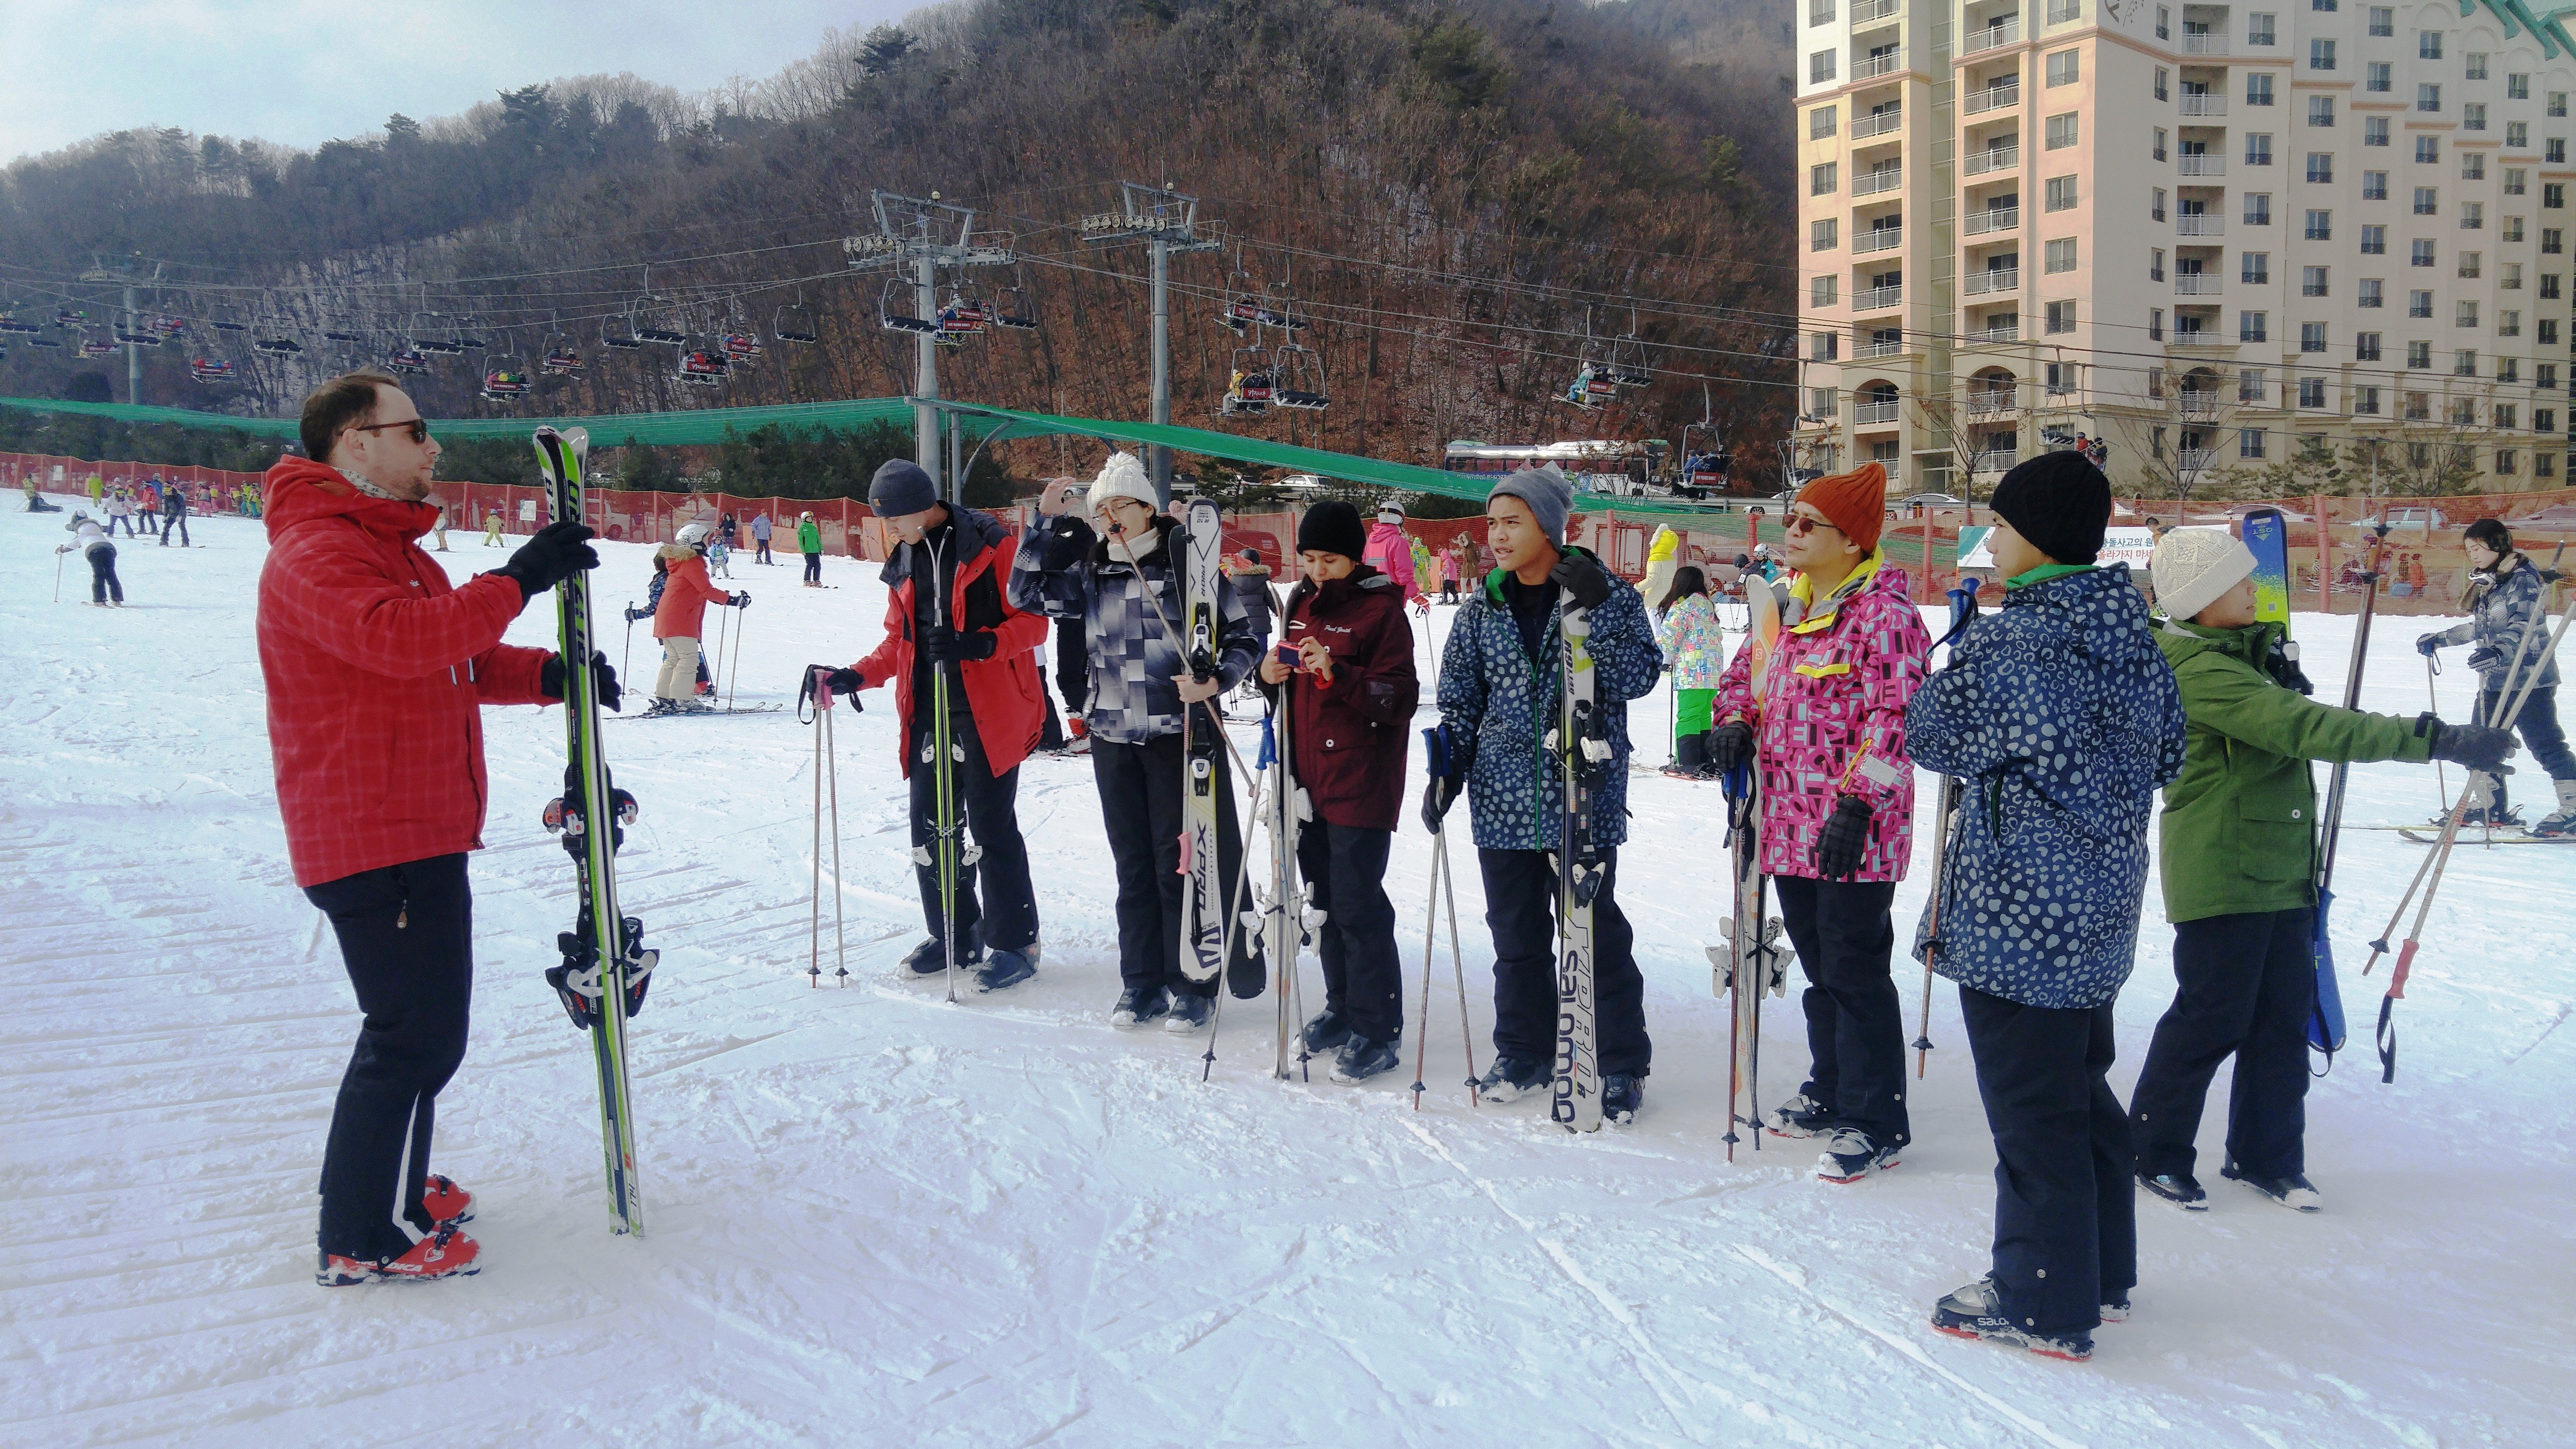 daemyung vivaldi park teaching ski group lesson